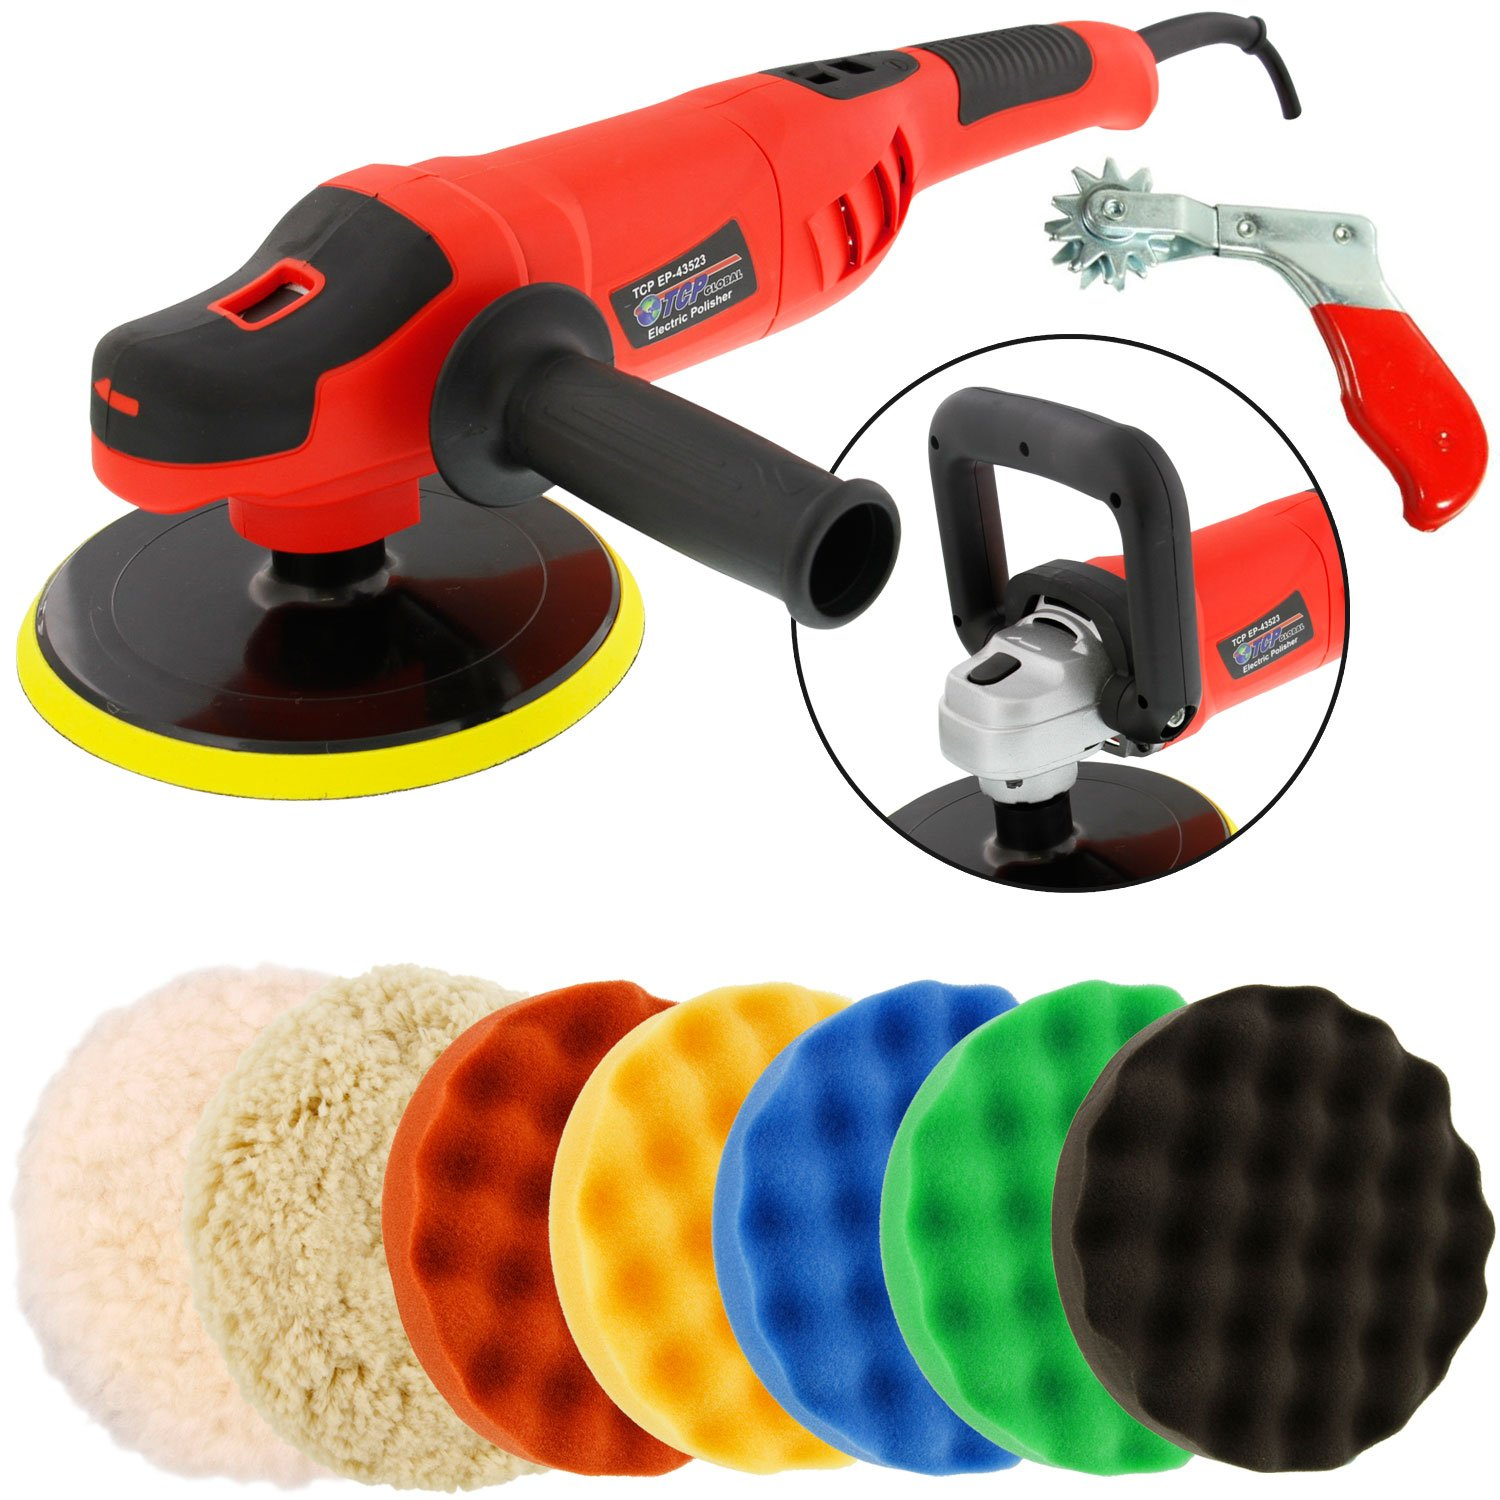 TCP Global Powerful 7'' Variable Speed Polisher with Digital RPM Display with 6-Waffle Foam Polishing Pads by TCP Global